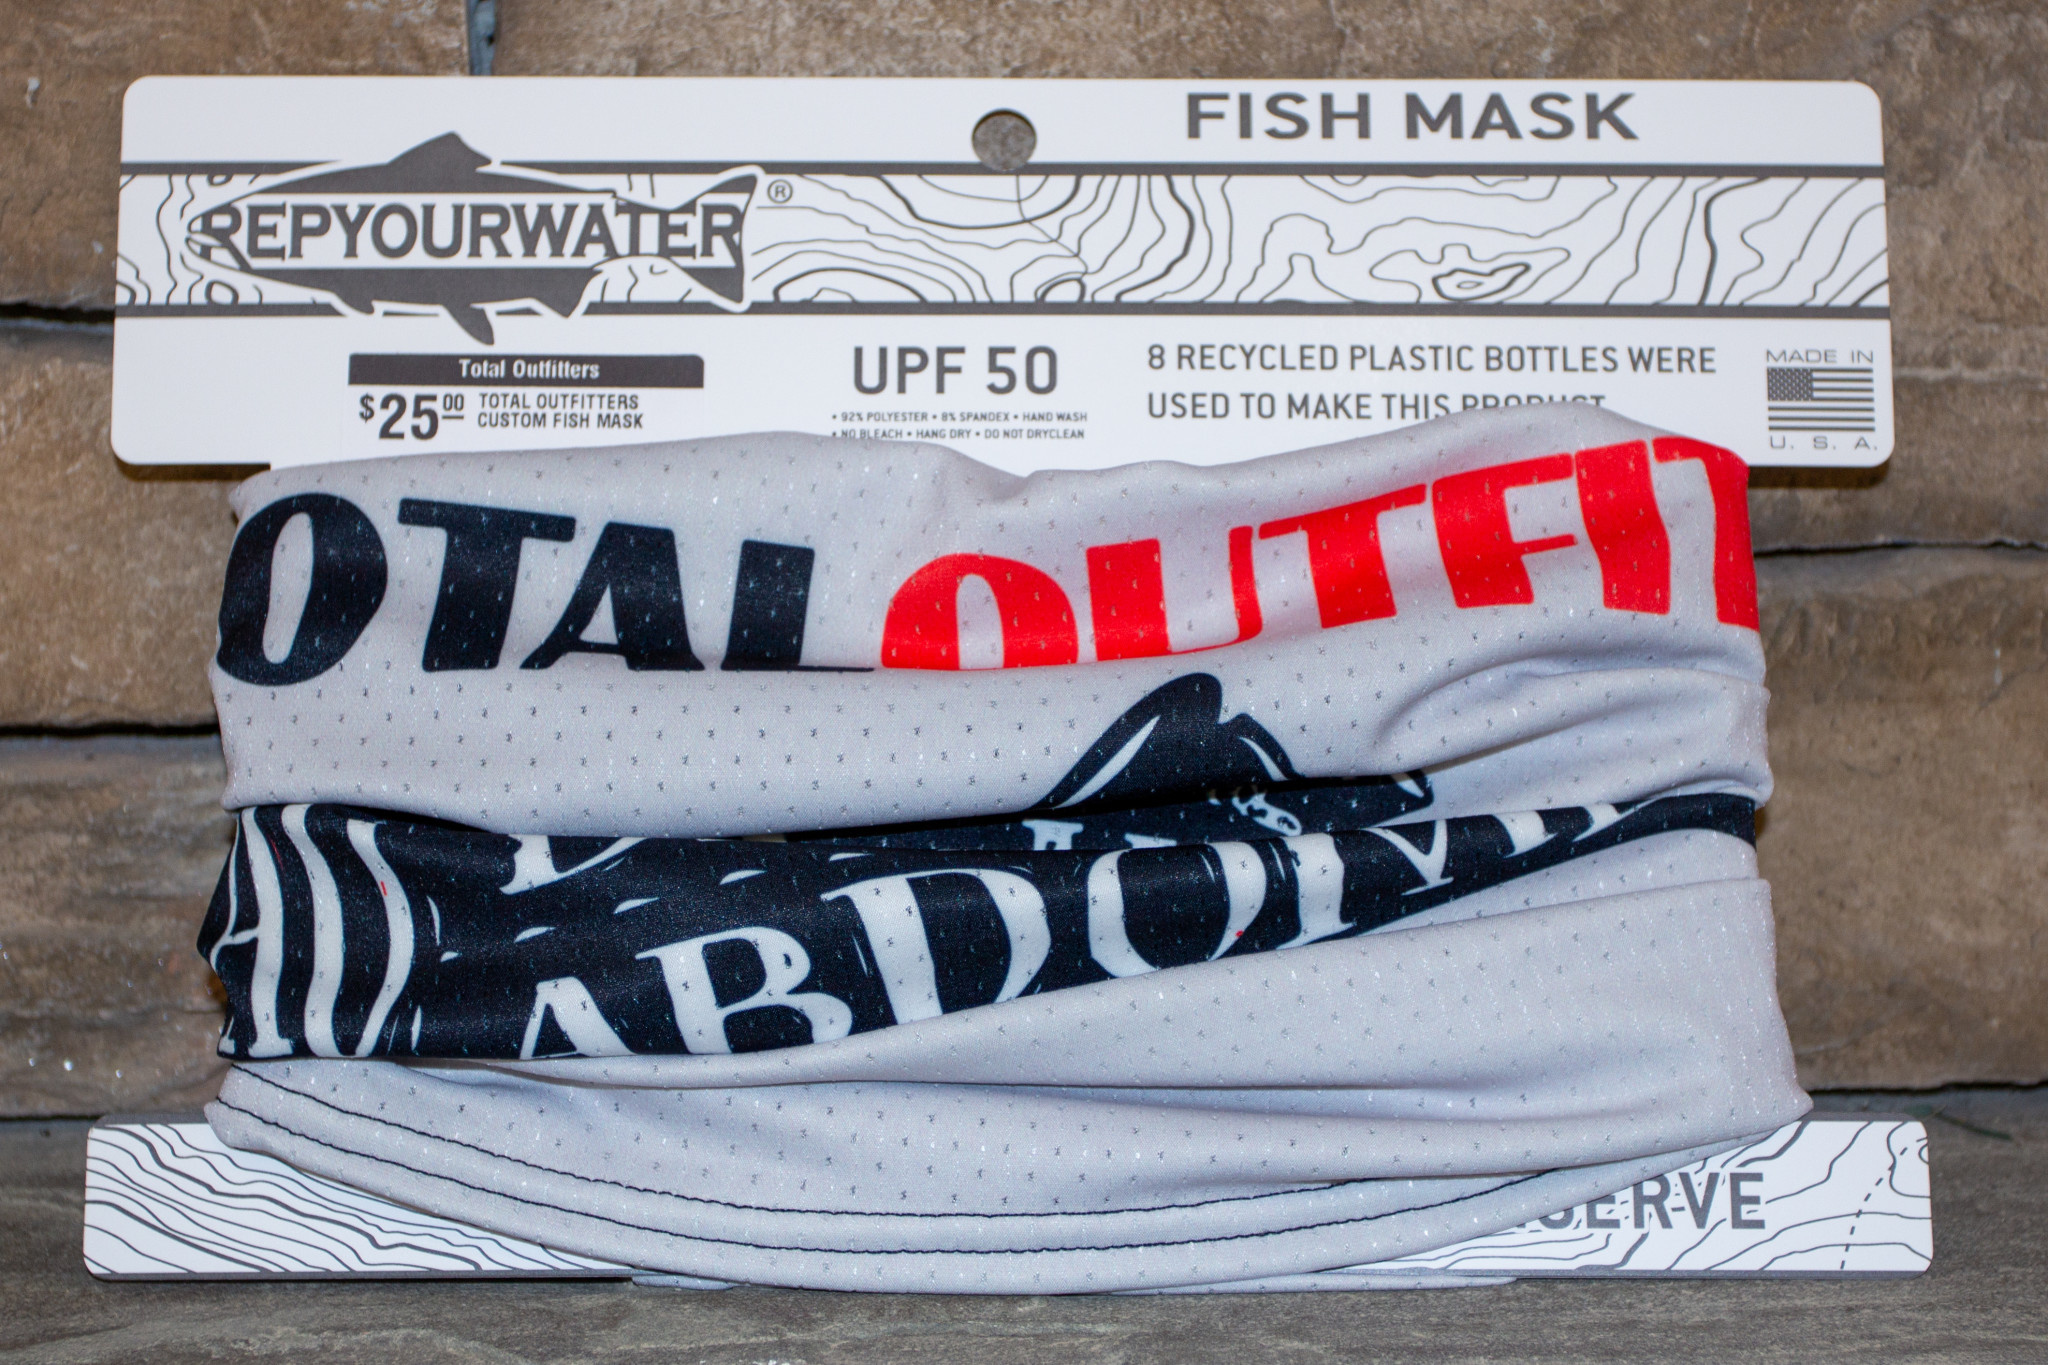 REP YOUR WATER TOTAL OUTFITTERS CUSTOM FISH MASK BY REPYOURWATER